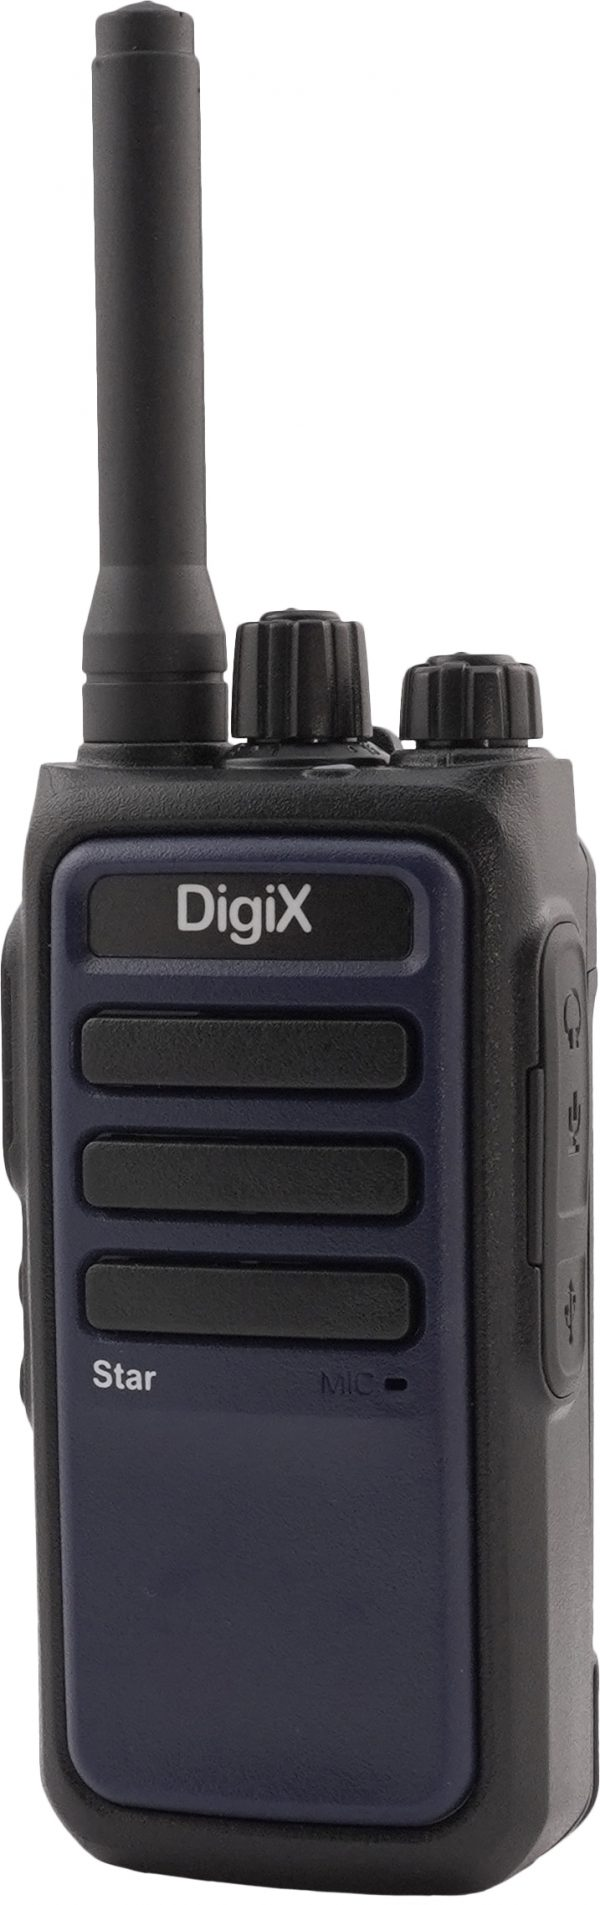 DigiX Star Front